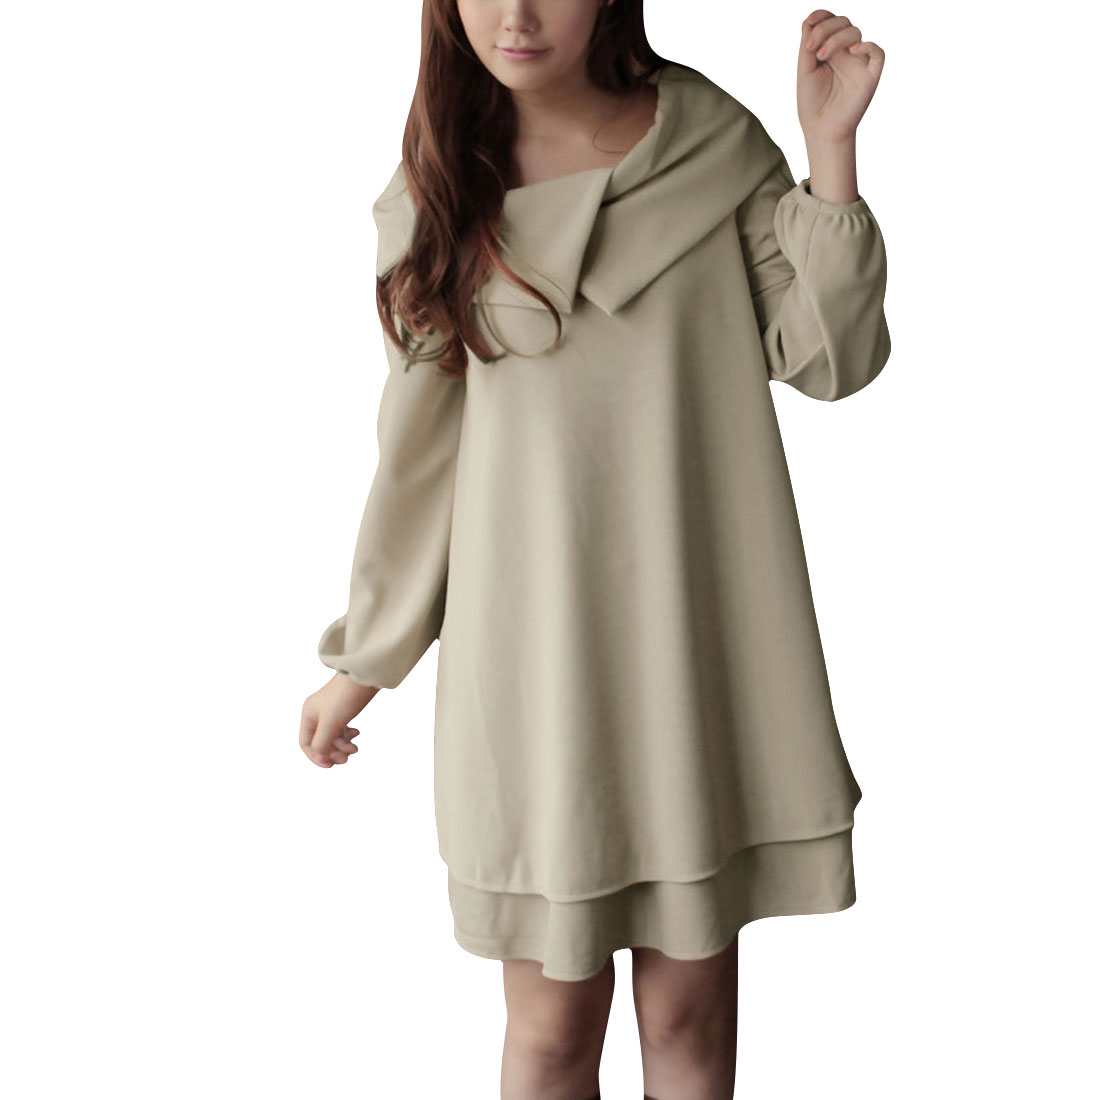 Ladies Beige Side Pockets Tiered Autumn Pullover Fashion Dress S